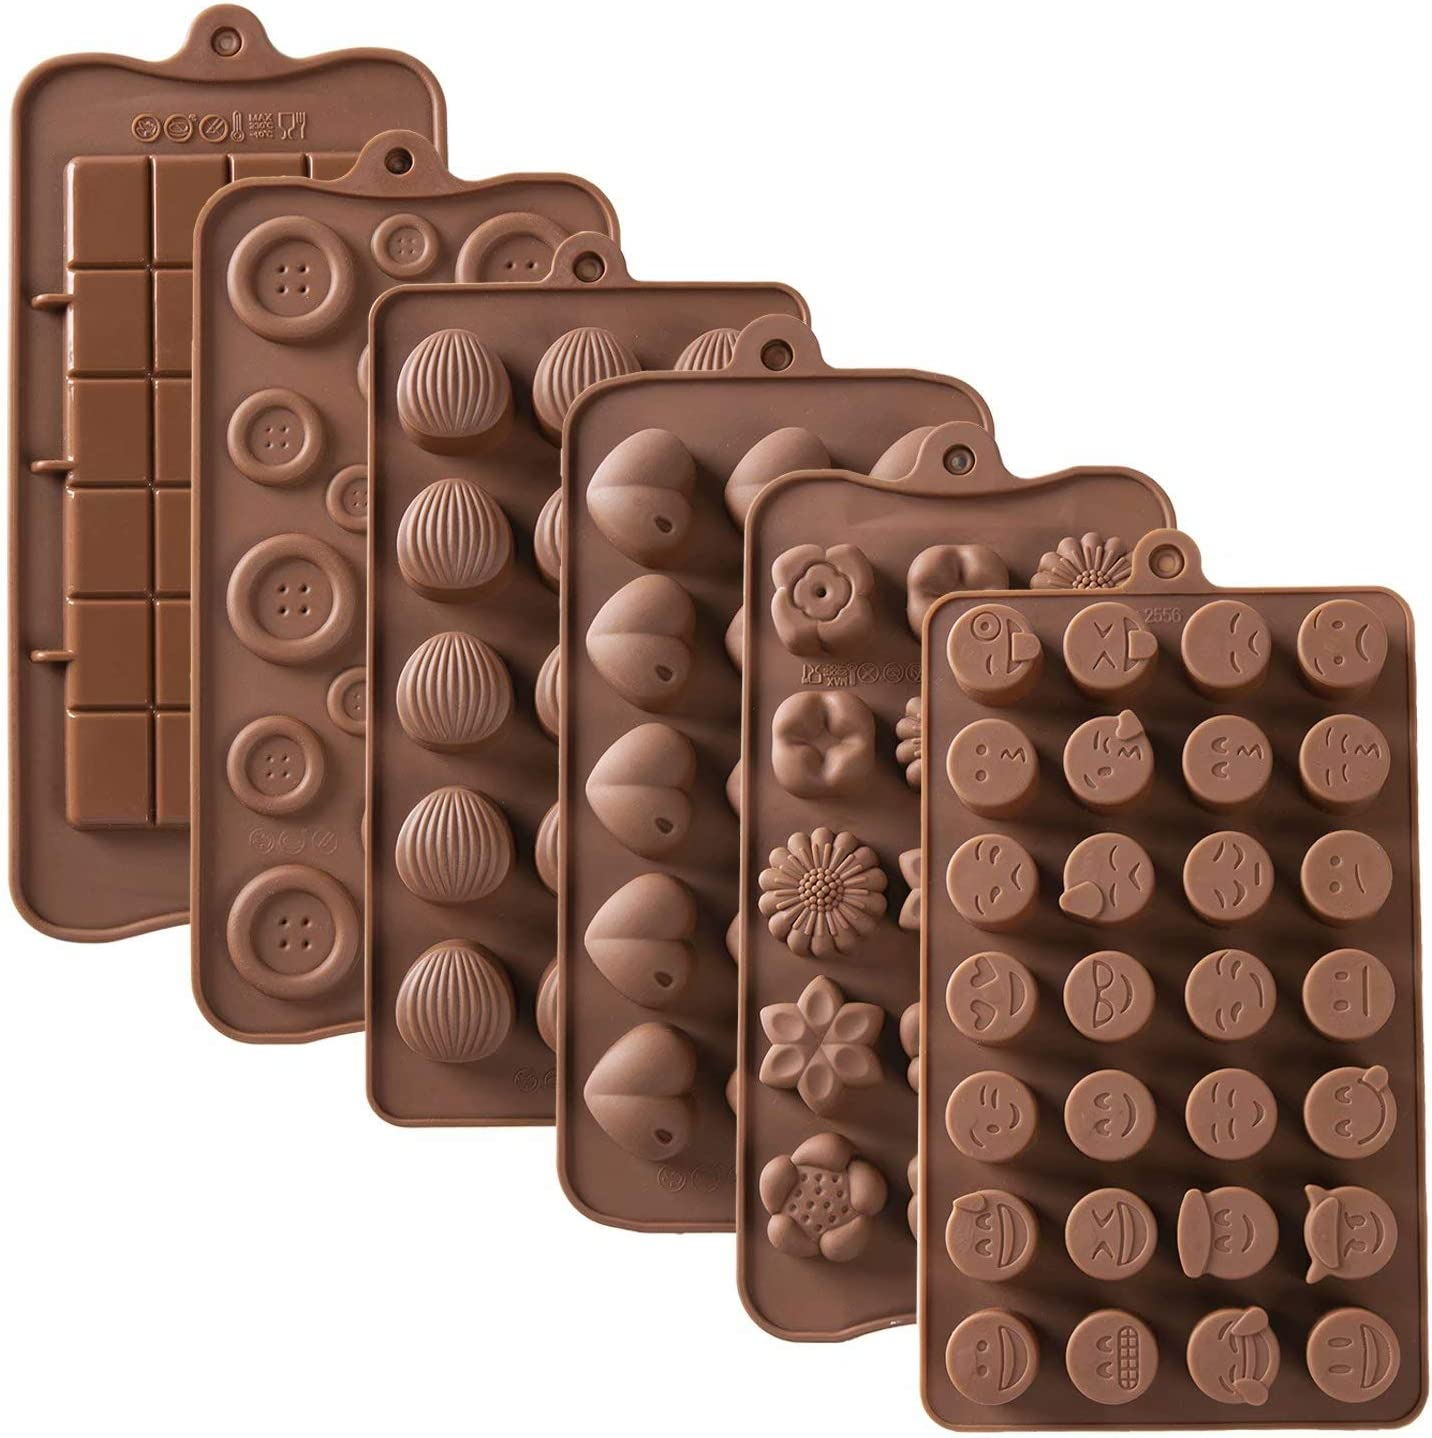 MType 6PCS Reusable Silicone Chocolate Molds, Food Grade Non-Stick Silicone Baking Trays for Break-Apart Chocolate, Candies-Hearts, Flowers, Buttons, Emojis, Rectangle, Shells Shapes in Brown Trays